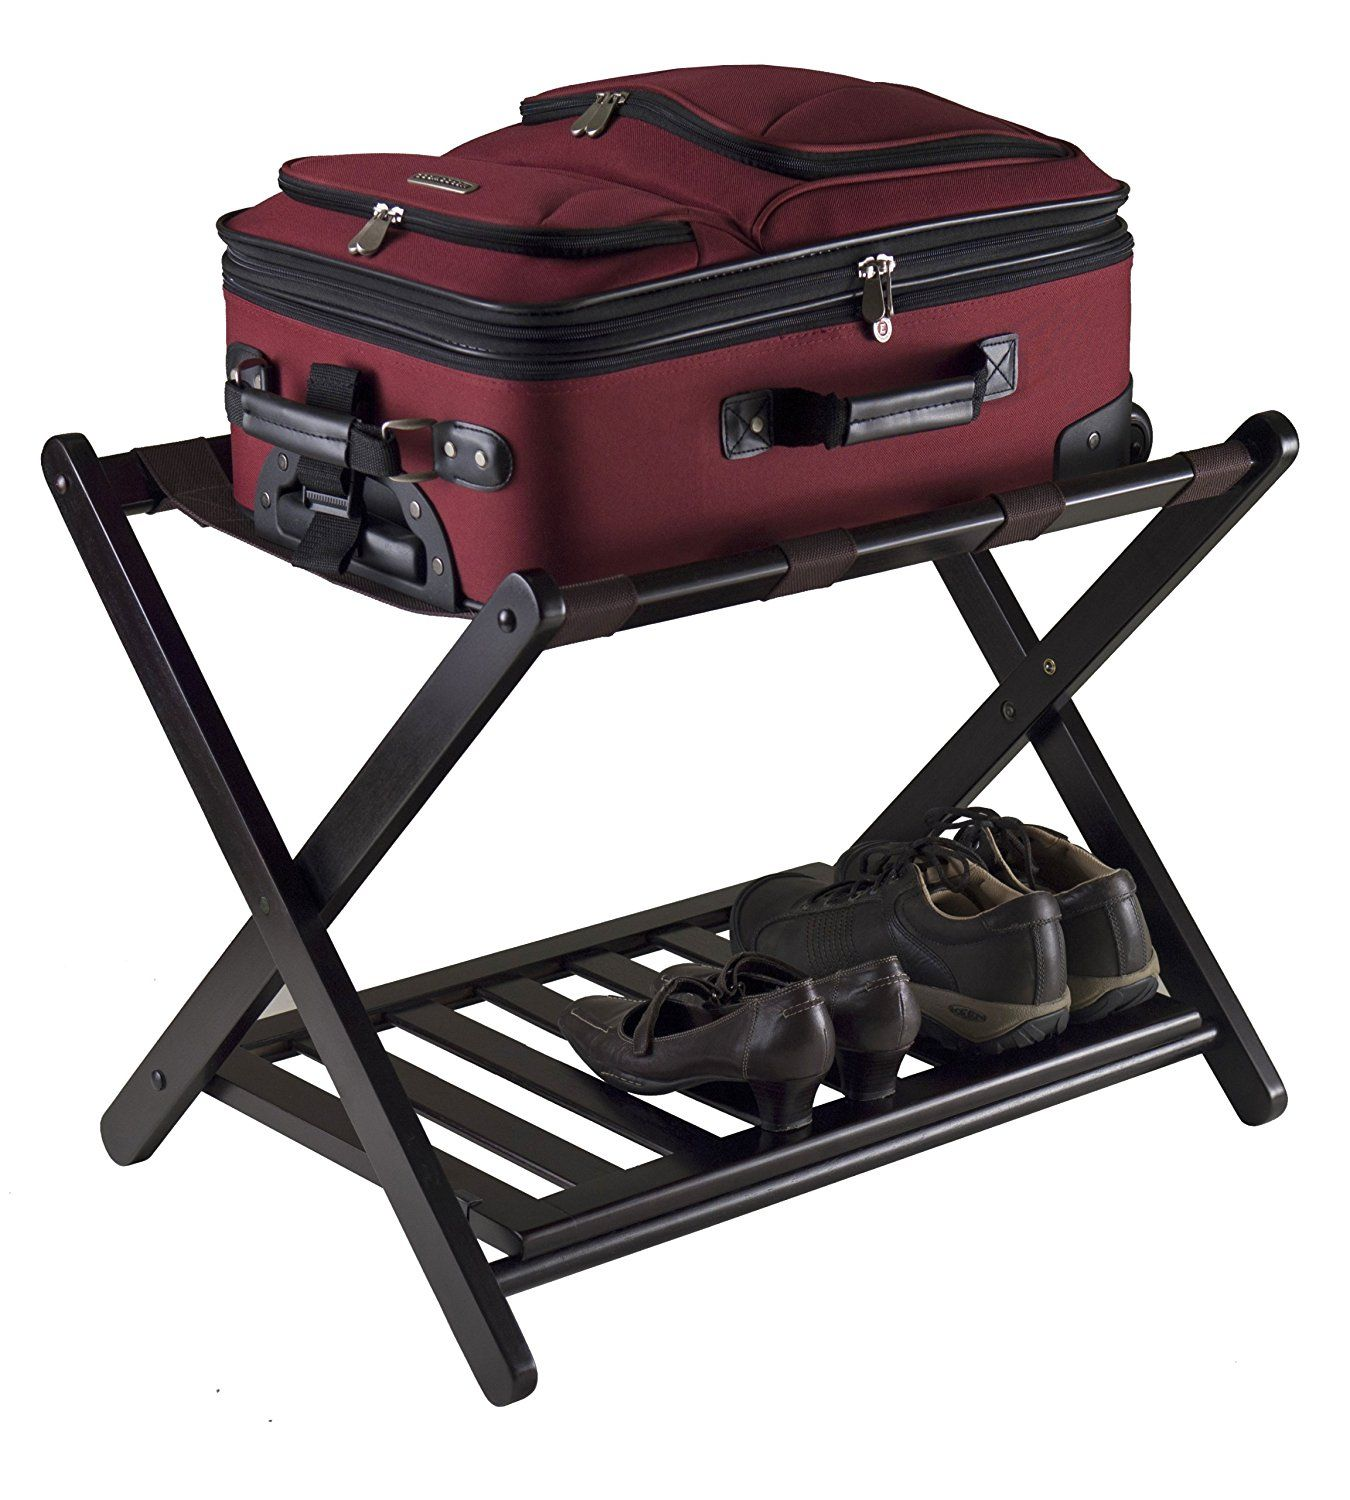 Captivating Amazon.com: Winsome 92436 Luggage Rack With Shelf: Home U0026 Kitchen